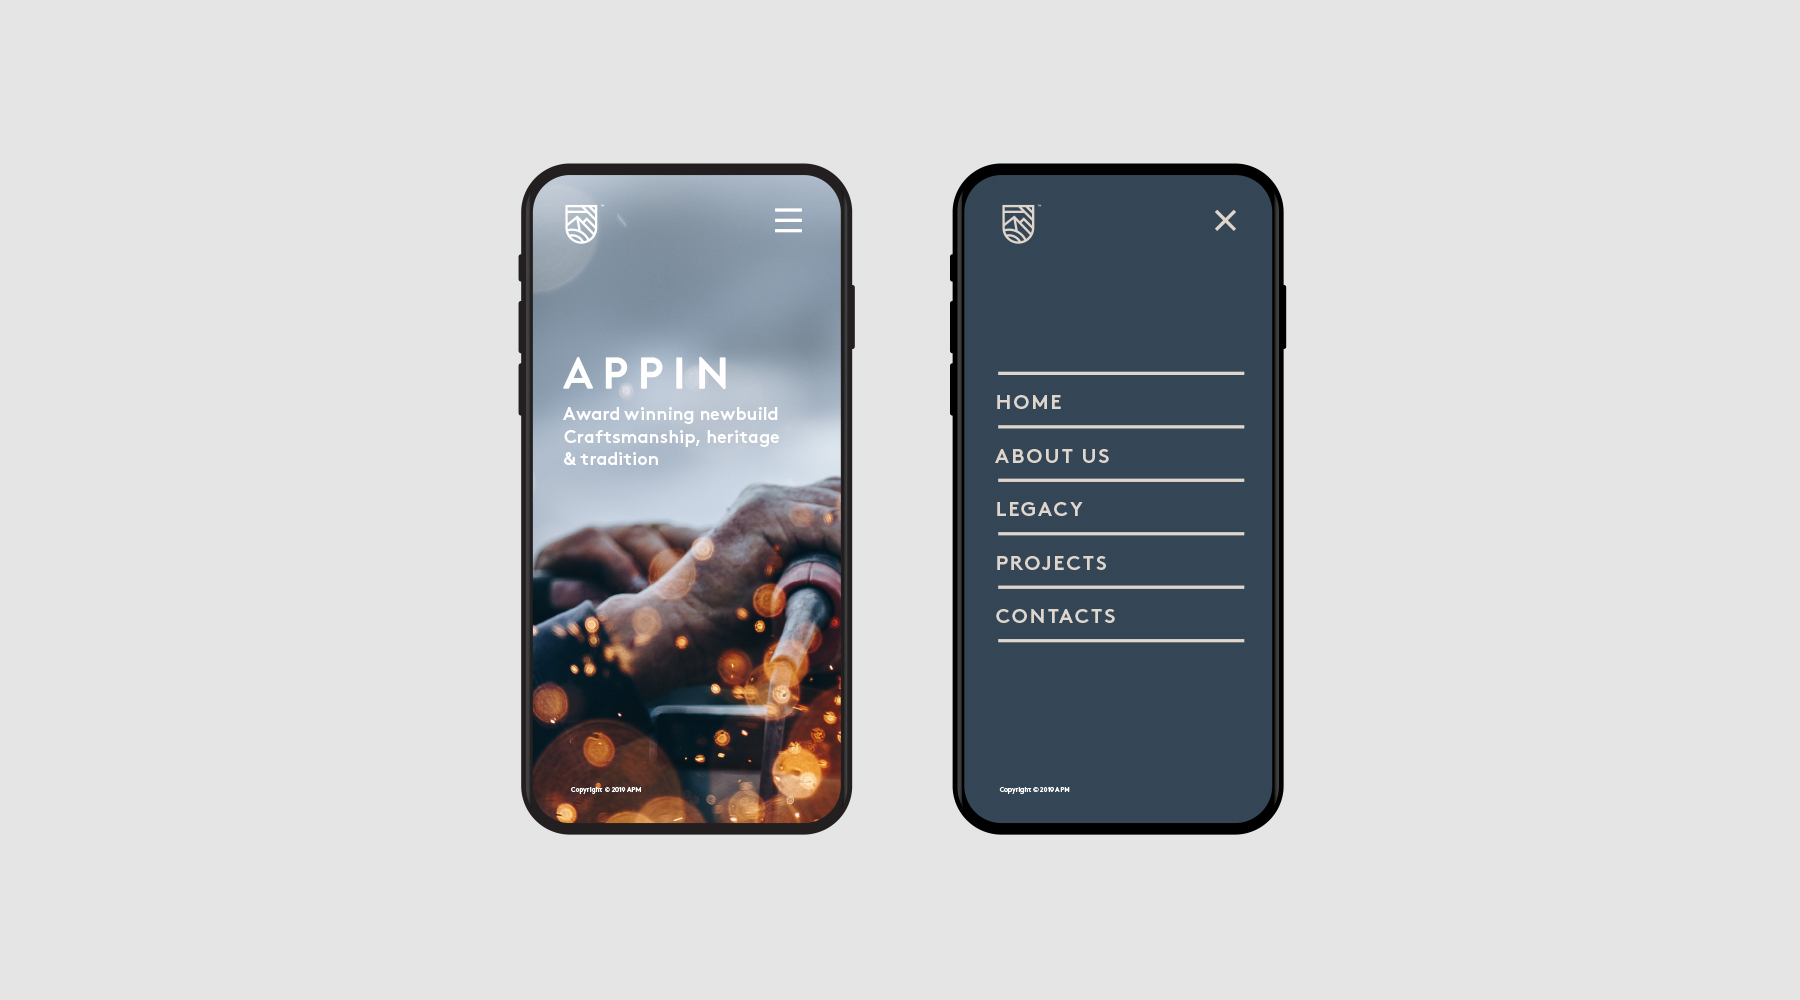 Appin_6